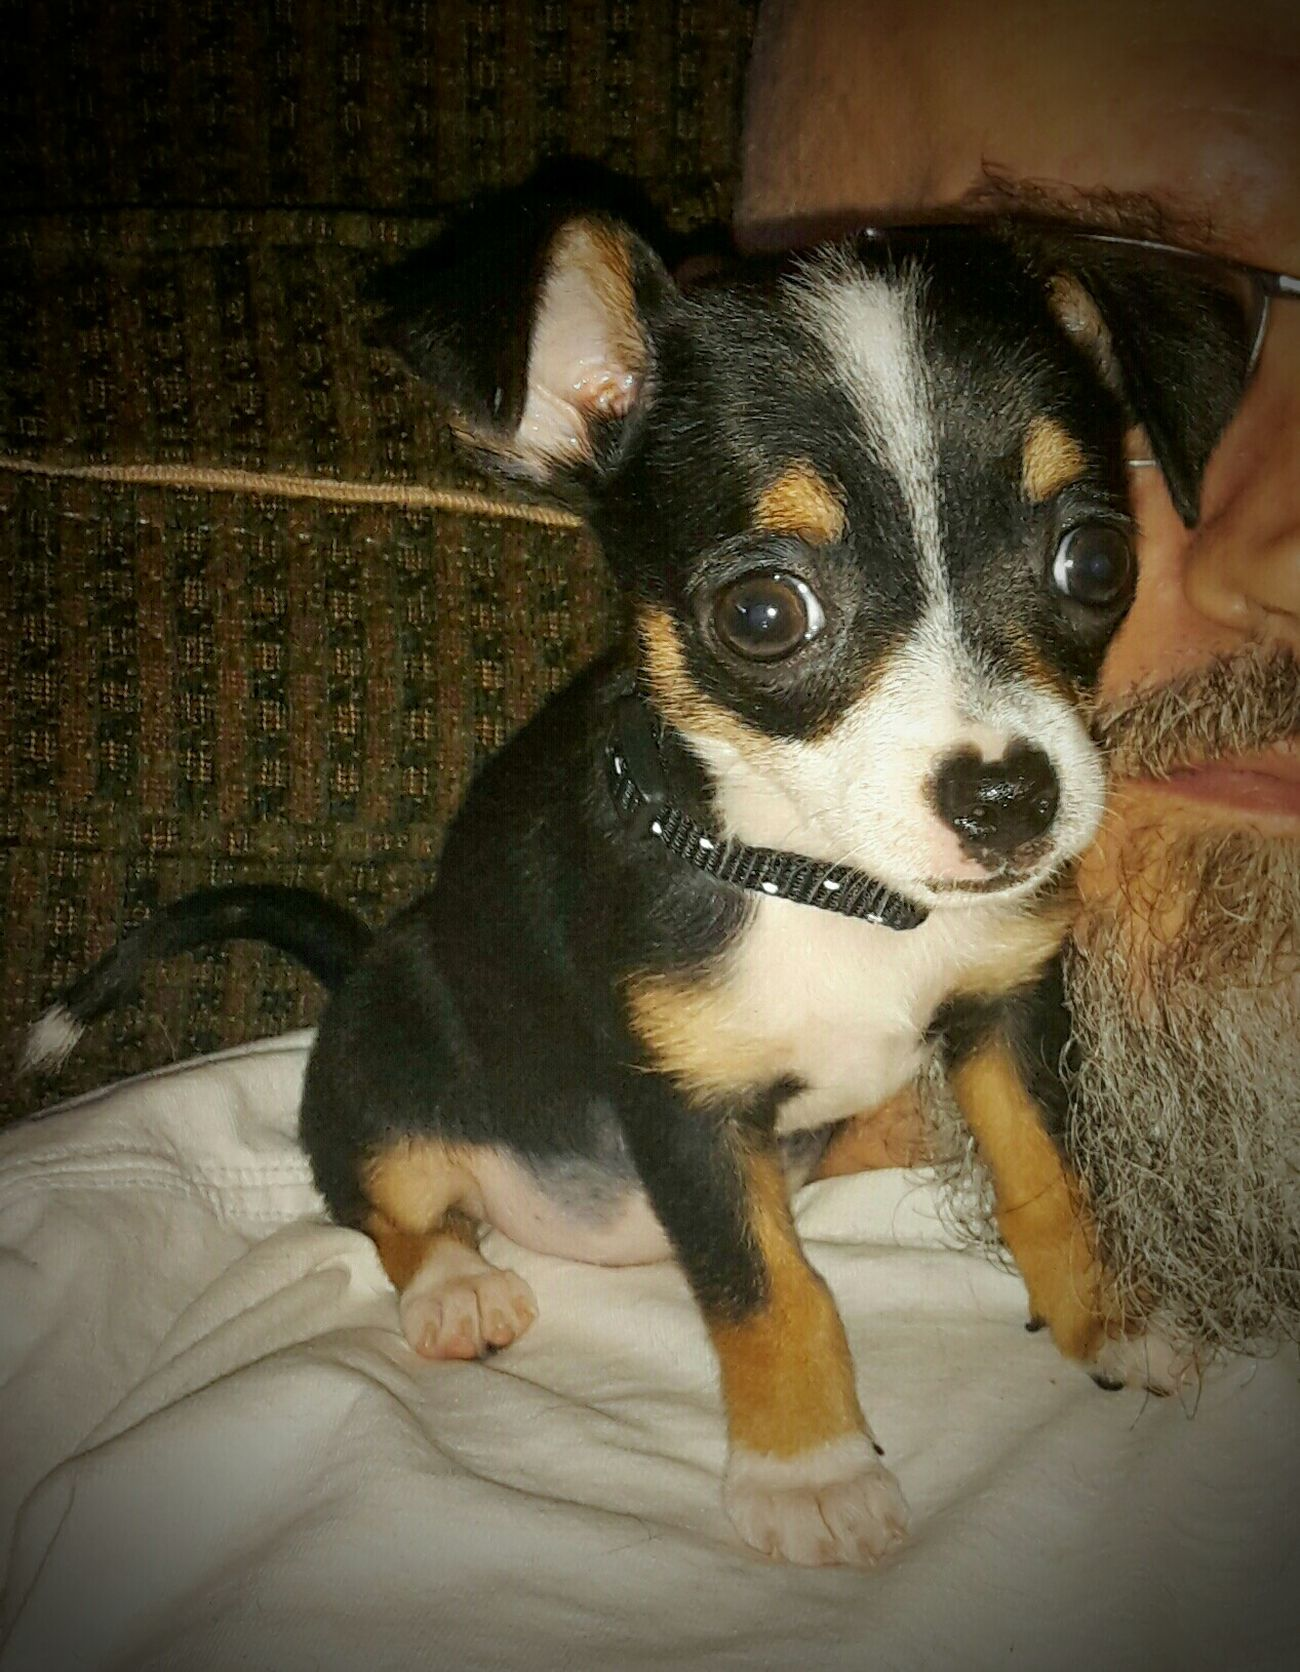 Rescued ❤ Chihuahuas Of Eyeem Chihuahua<3 Chihuahuas<3 Not A Care In The World Chihuahua Love ♥ Chihuahualife Chihuahuas Chihuahua - Dog My Dogs Are Cooler Than Your Kids Chihuahua Lovers Chihuahua Puppies Chihuahua Puppy Kat Rat Terrier Mix Dog Named Kat Spoiled Dog